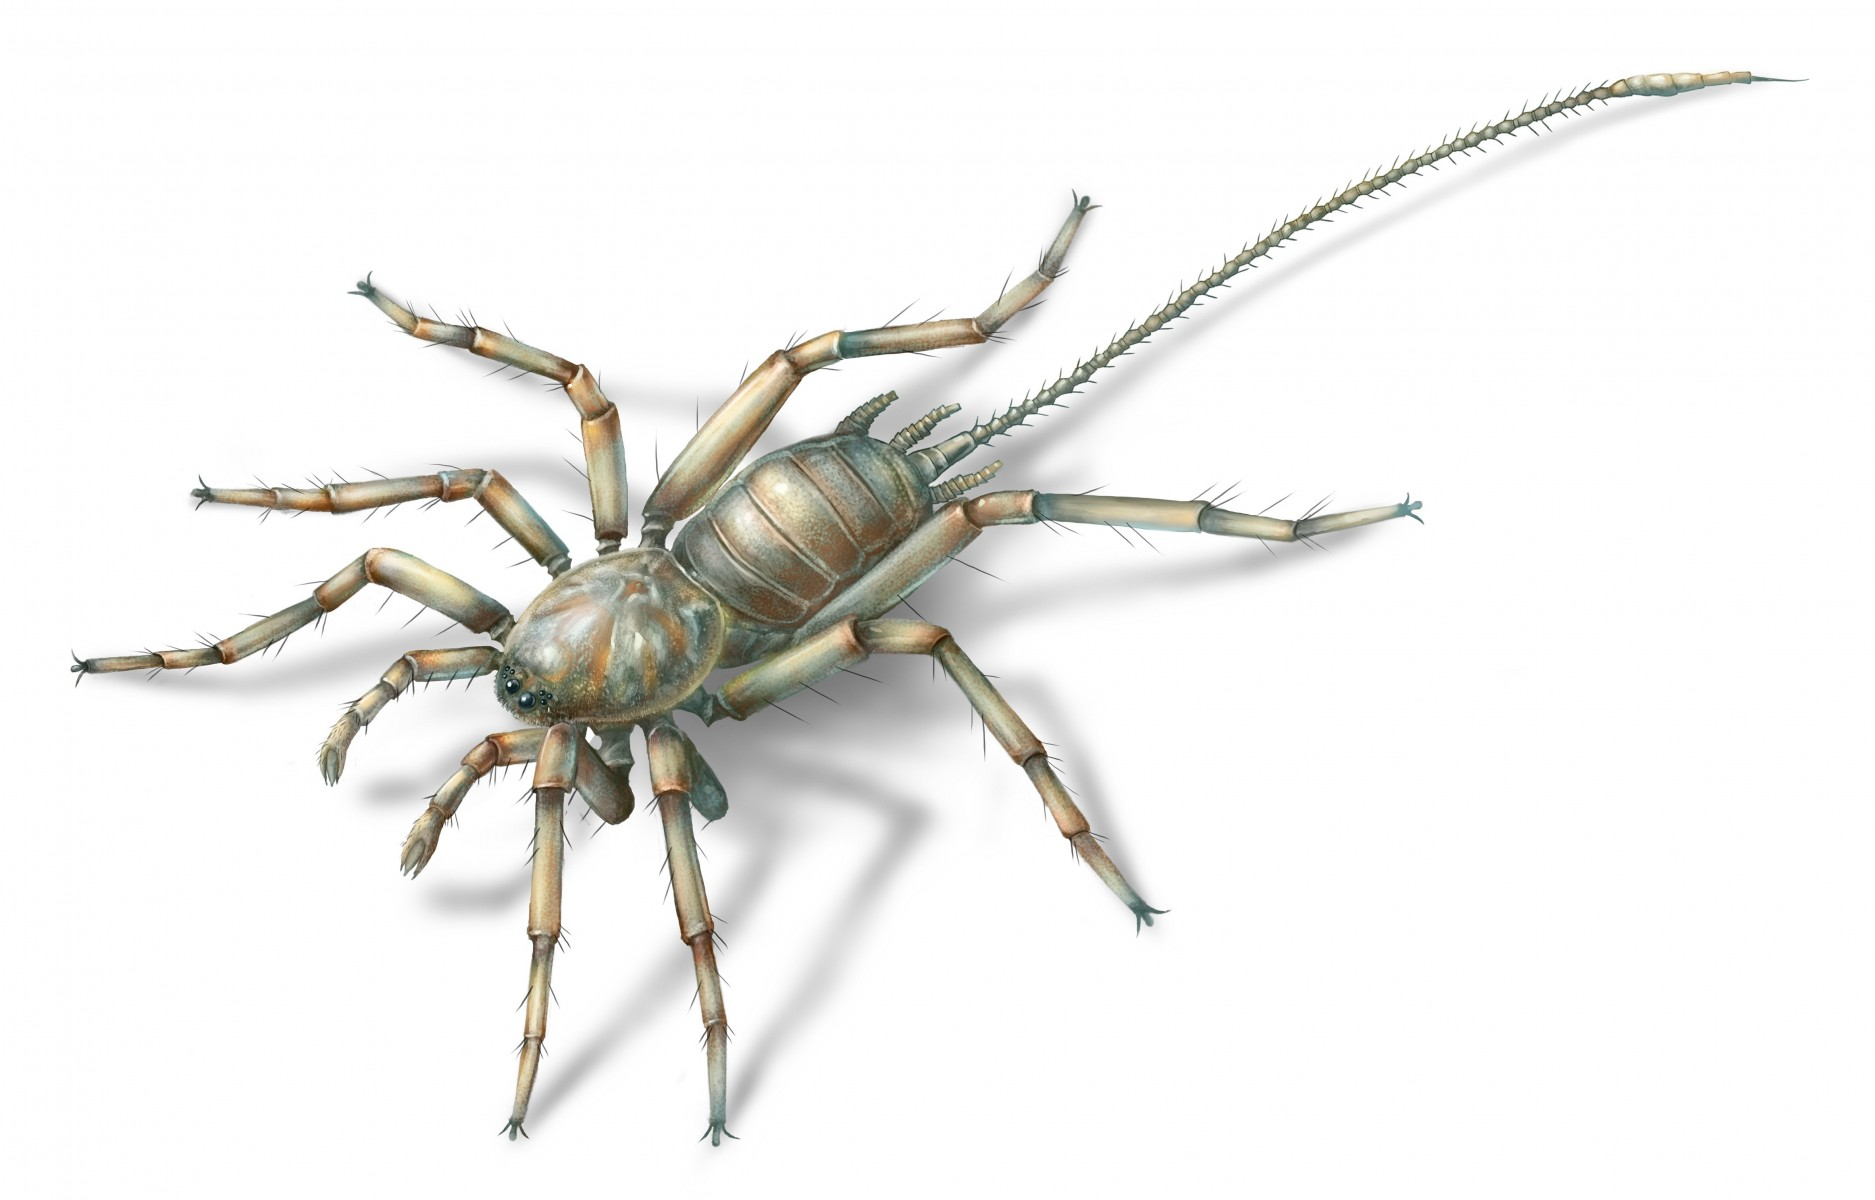 Spiders with 'long whippy' tails found in 100 million year old amber